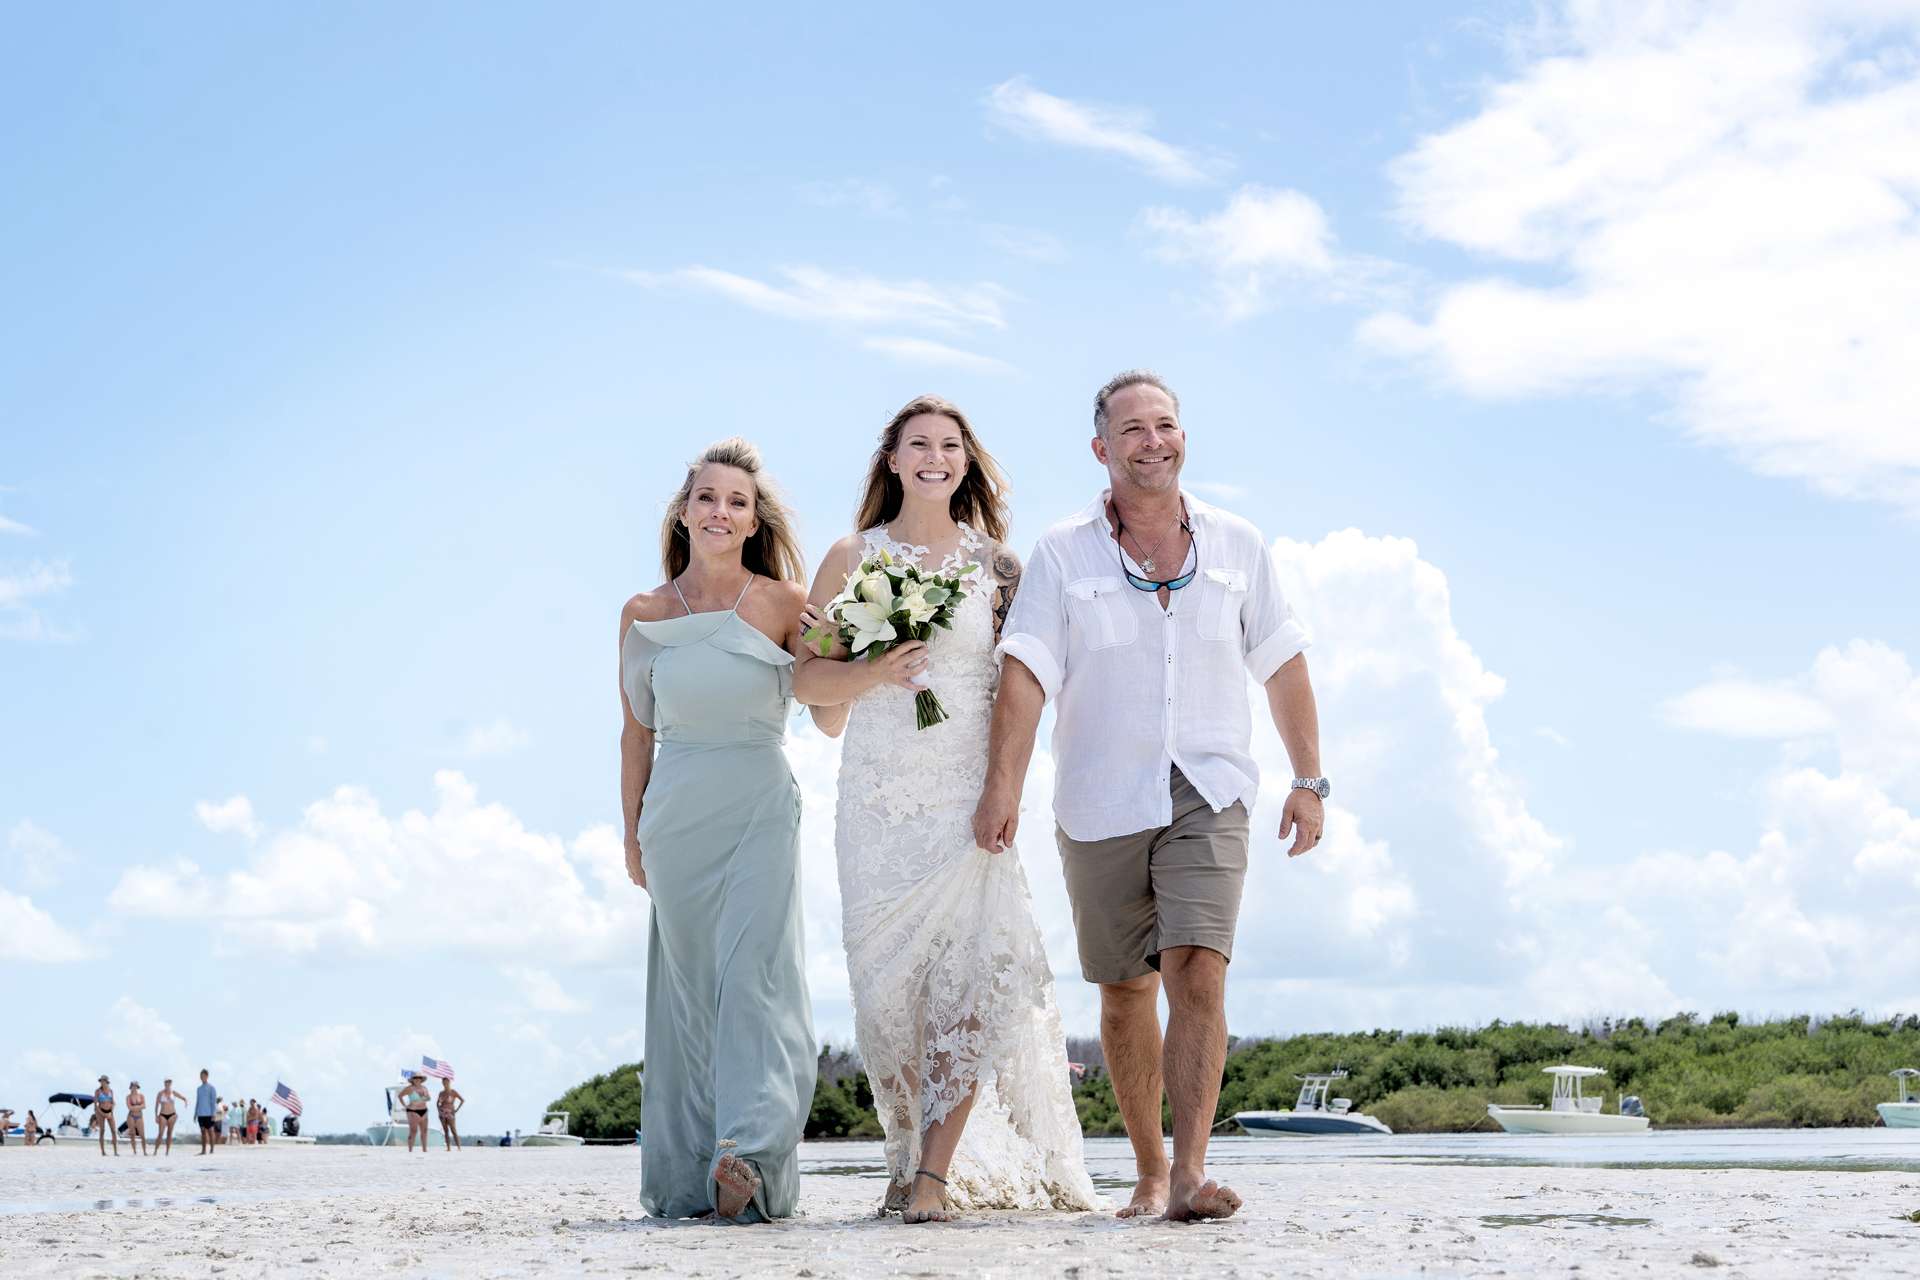 Key West Elopement Photographer | Amber's parents escort her down the aisle for this sandbar wedding